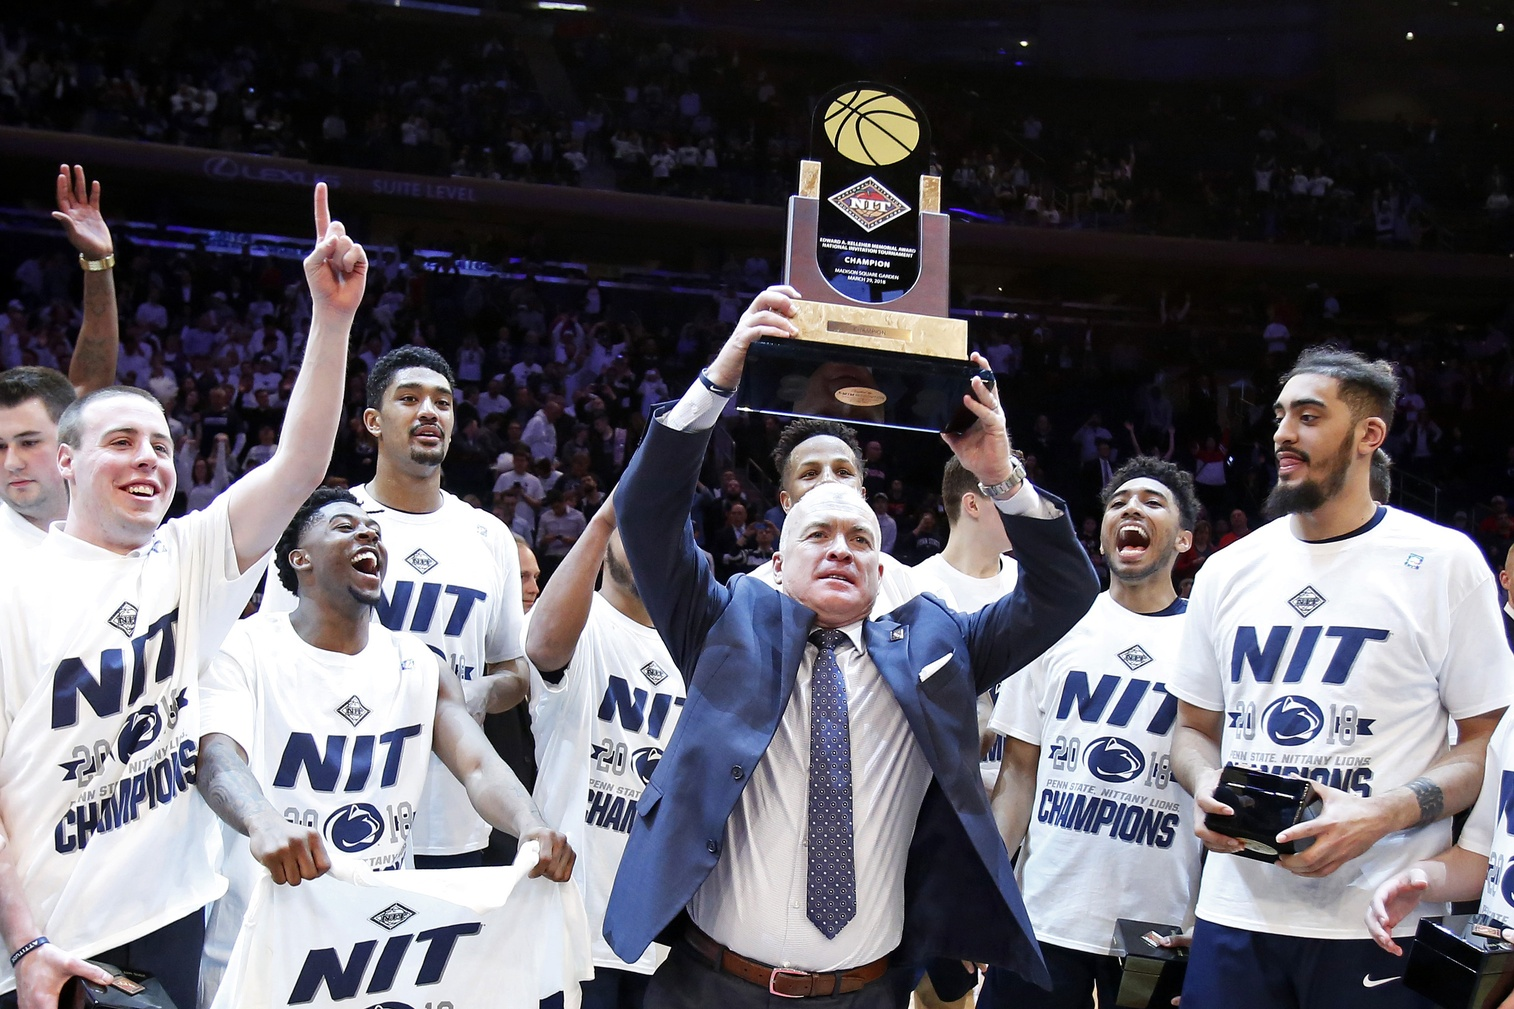 Pat Chambers coached Penn State to the NIT championship. Now it's time to take the next step forward.